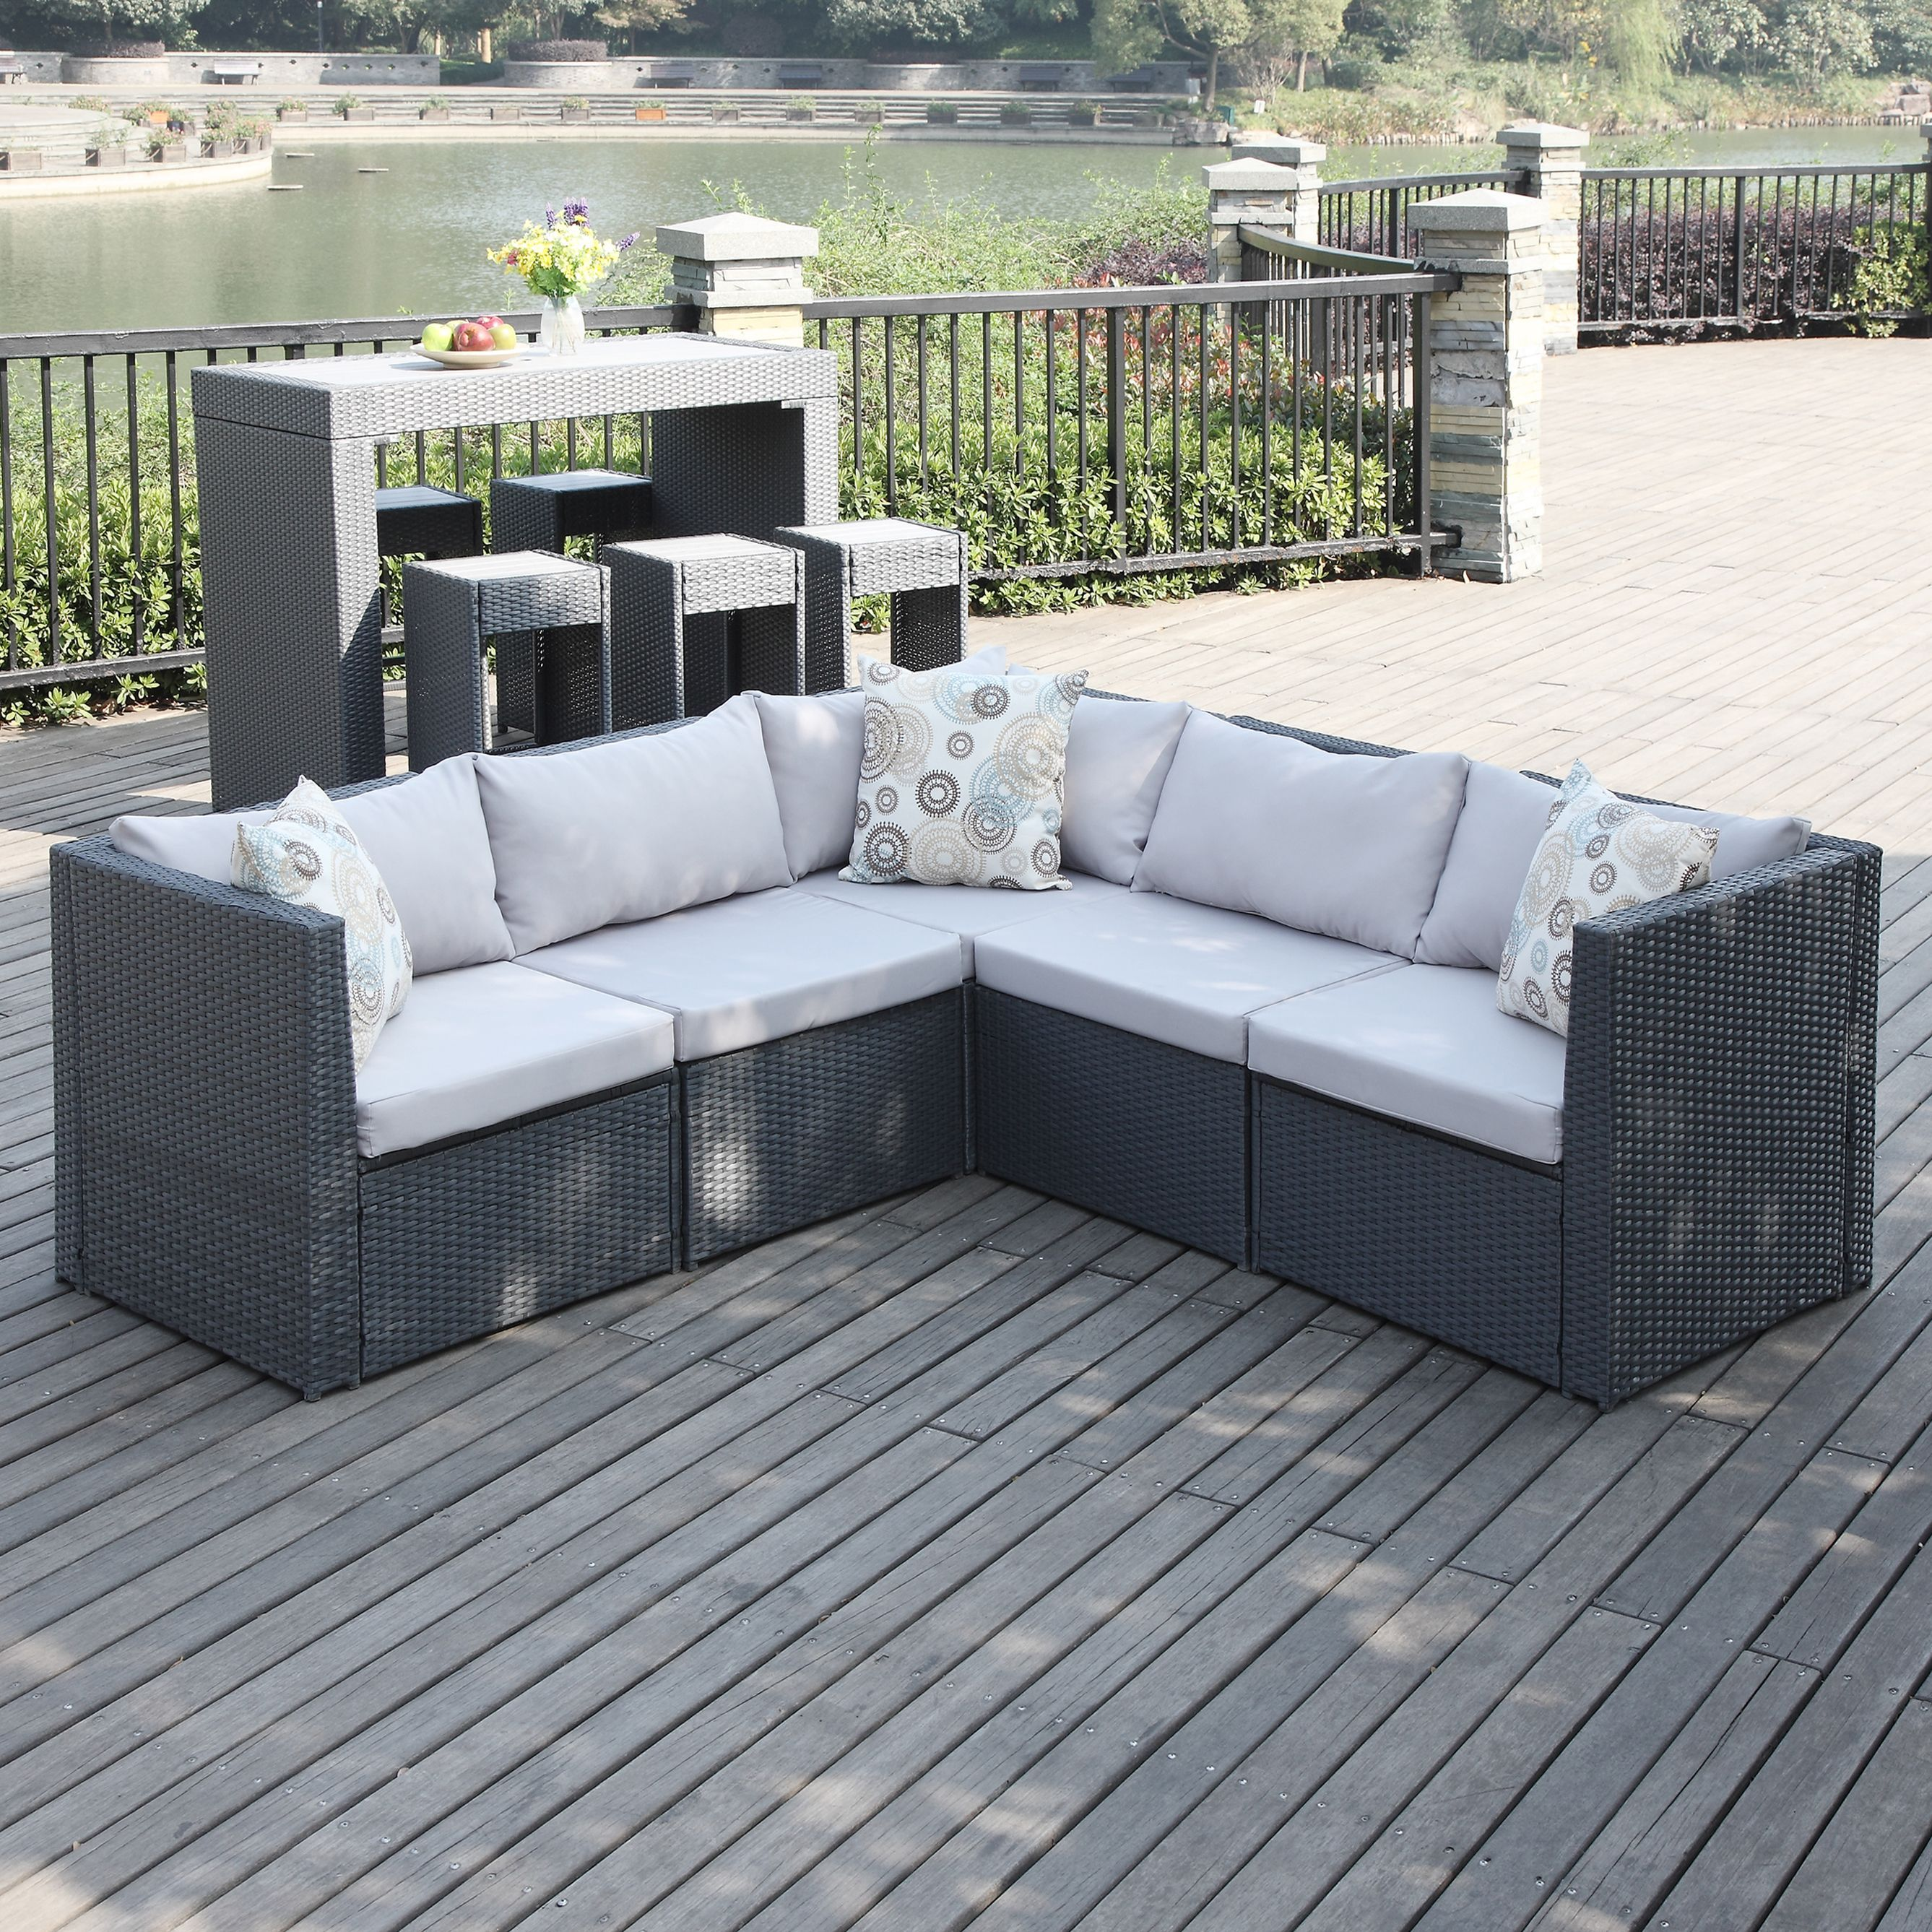 the portfolio aldrich 5 piece sectional features 3 corner. Black Bedroom Furniture Sets. Home Design Ideas